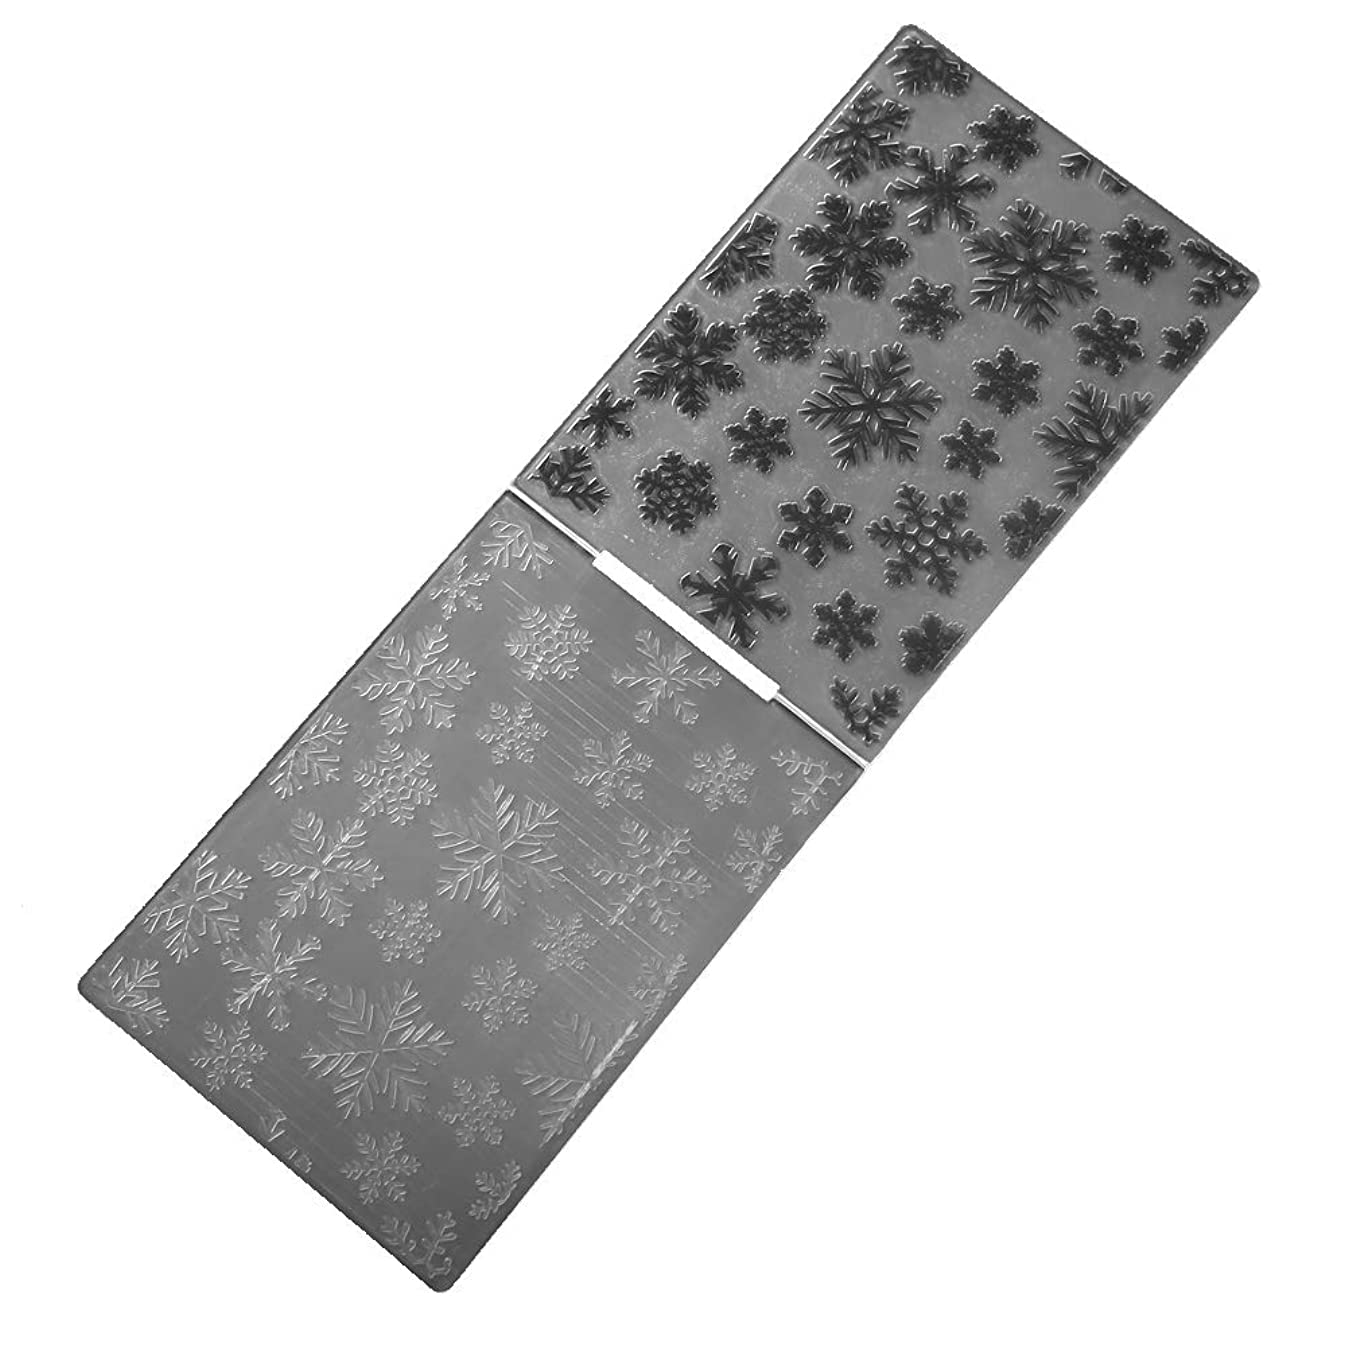 Snowflake Butterfly Plastic Embossing Folders for Card Making Scrapbooking Paper Crafts Template (O24-4)